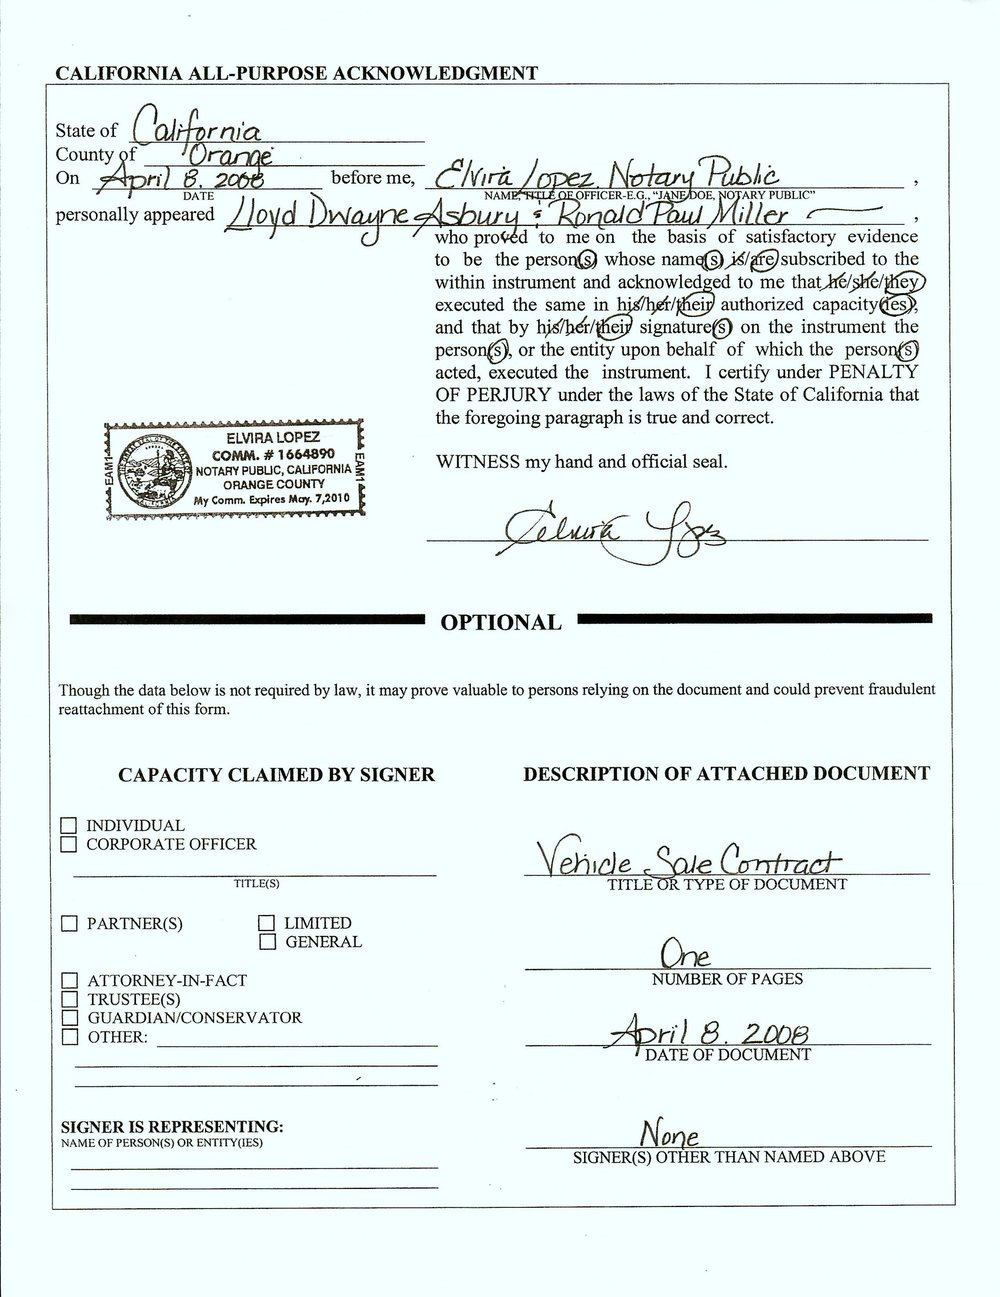 2008 Sale Contract Notarization.jpeg